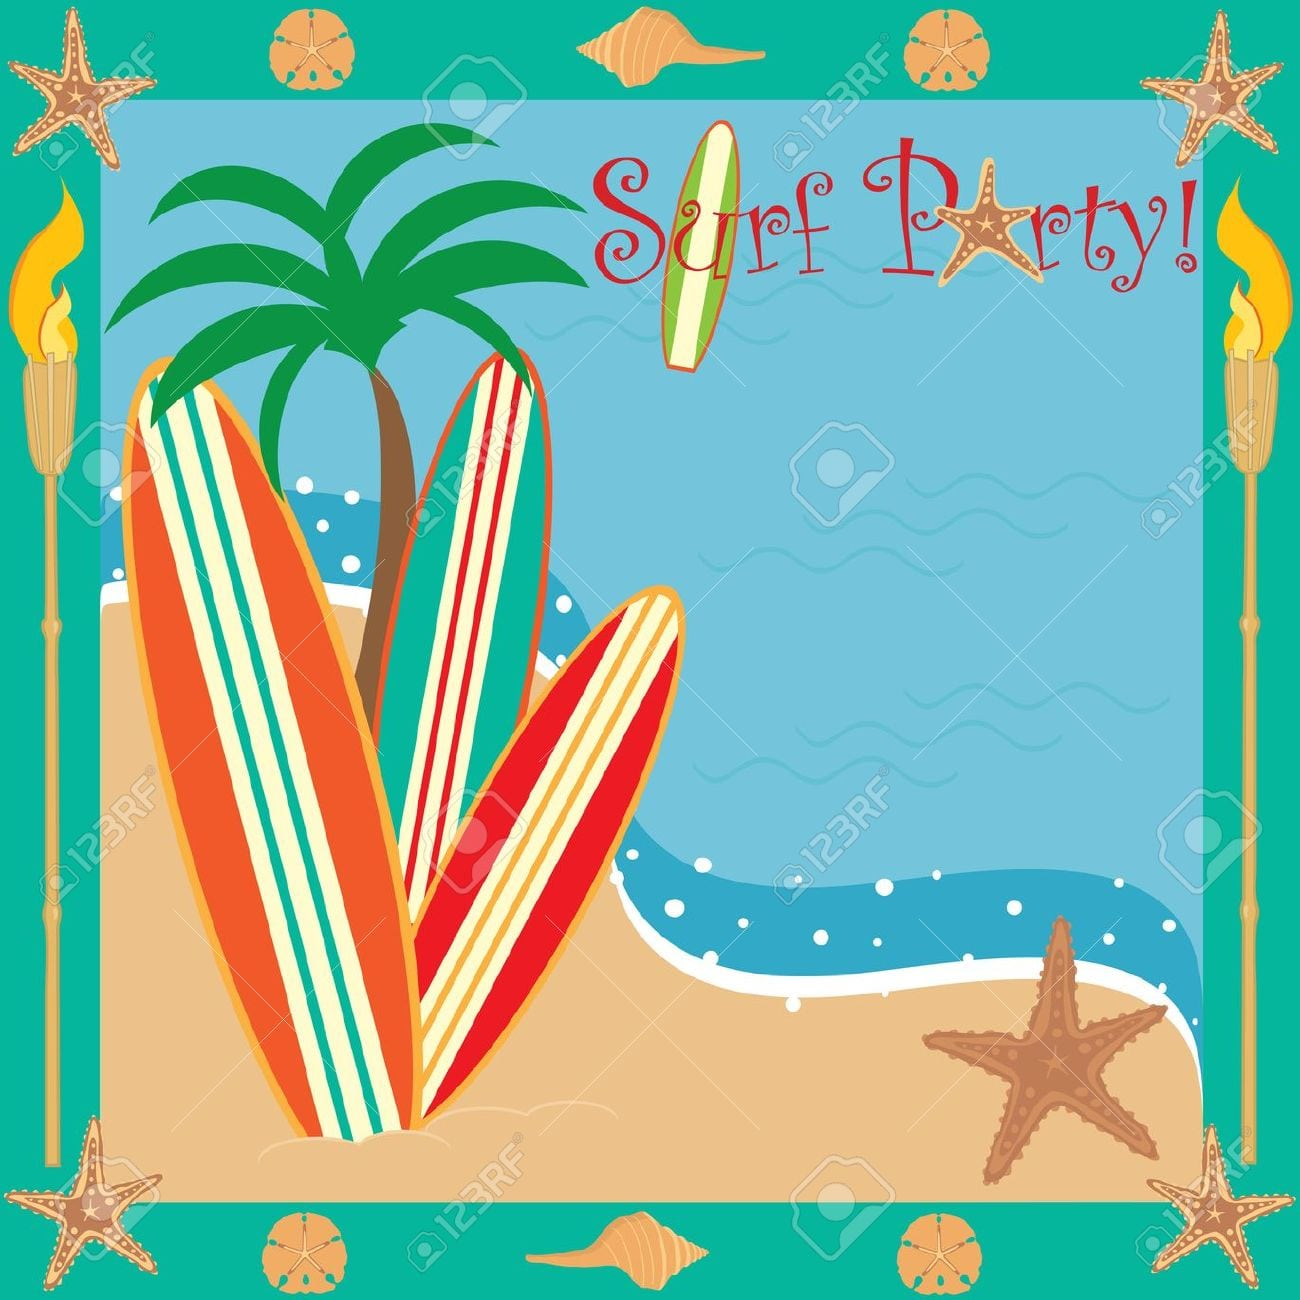 Surf Party Invitation Royalty Free Cliparts, Vectors, And Stock